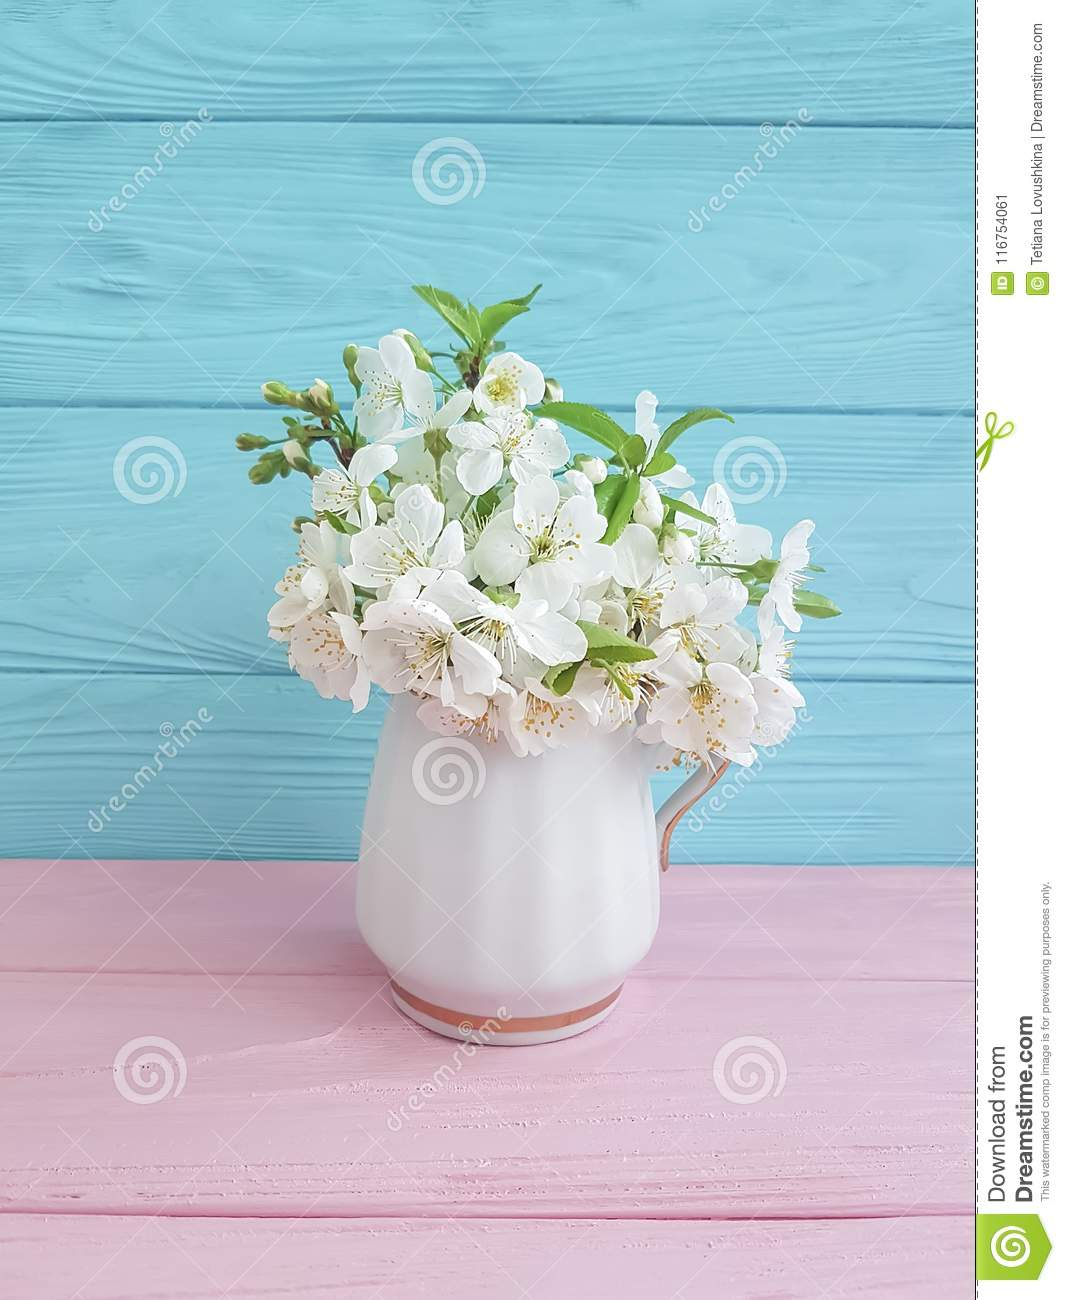 Blossoming cherry springtime vase bouquet on a wooden background